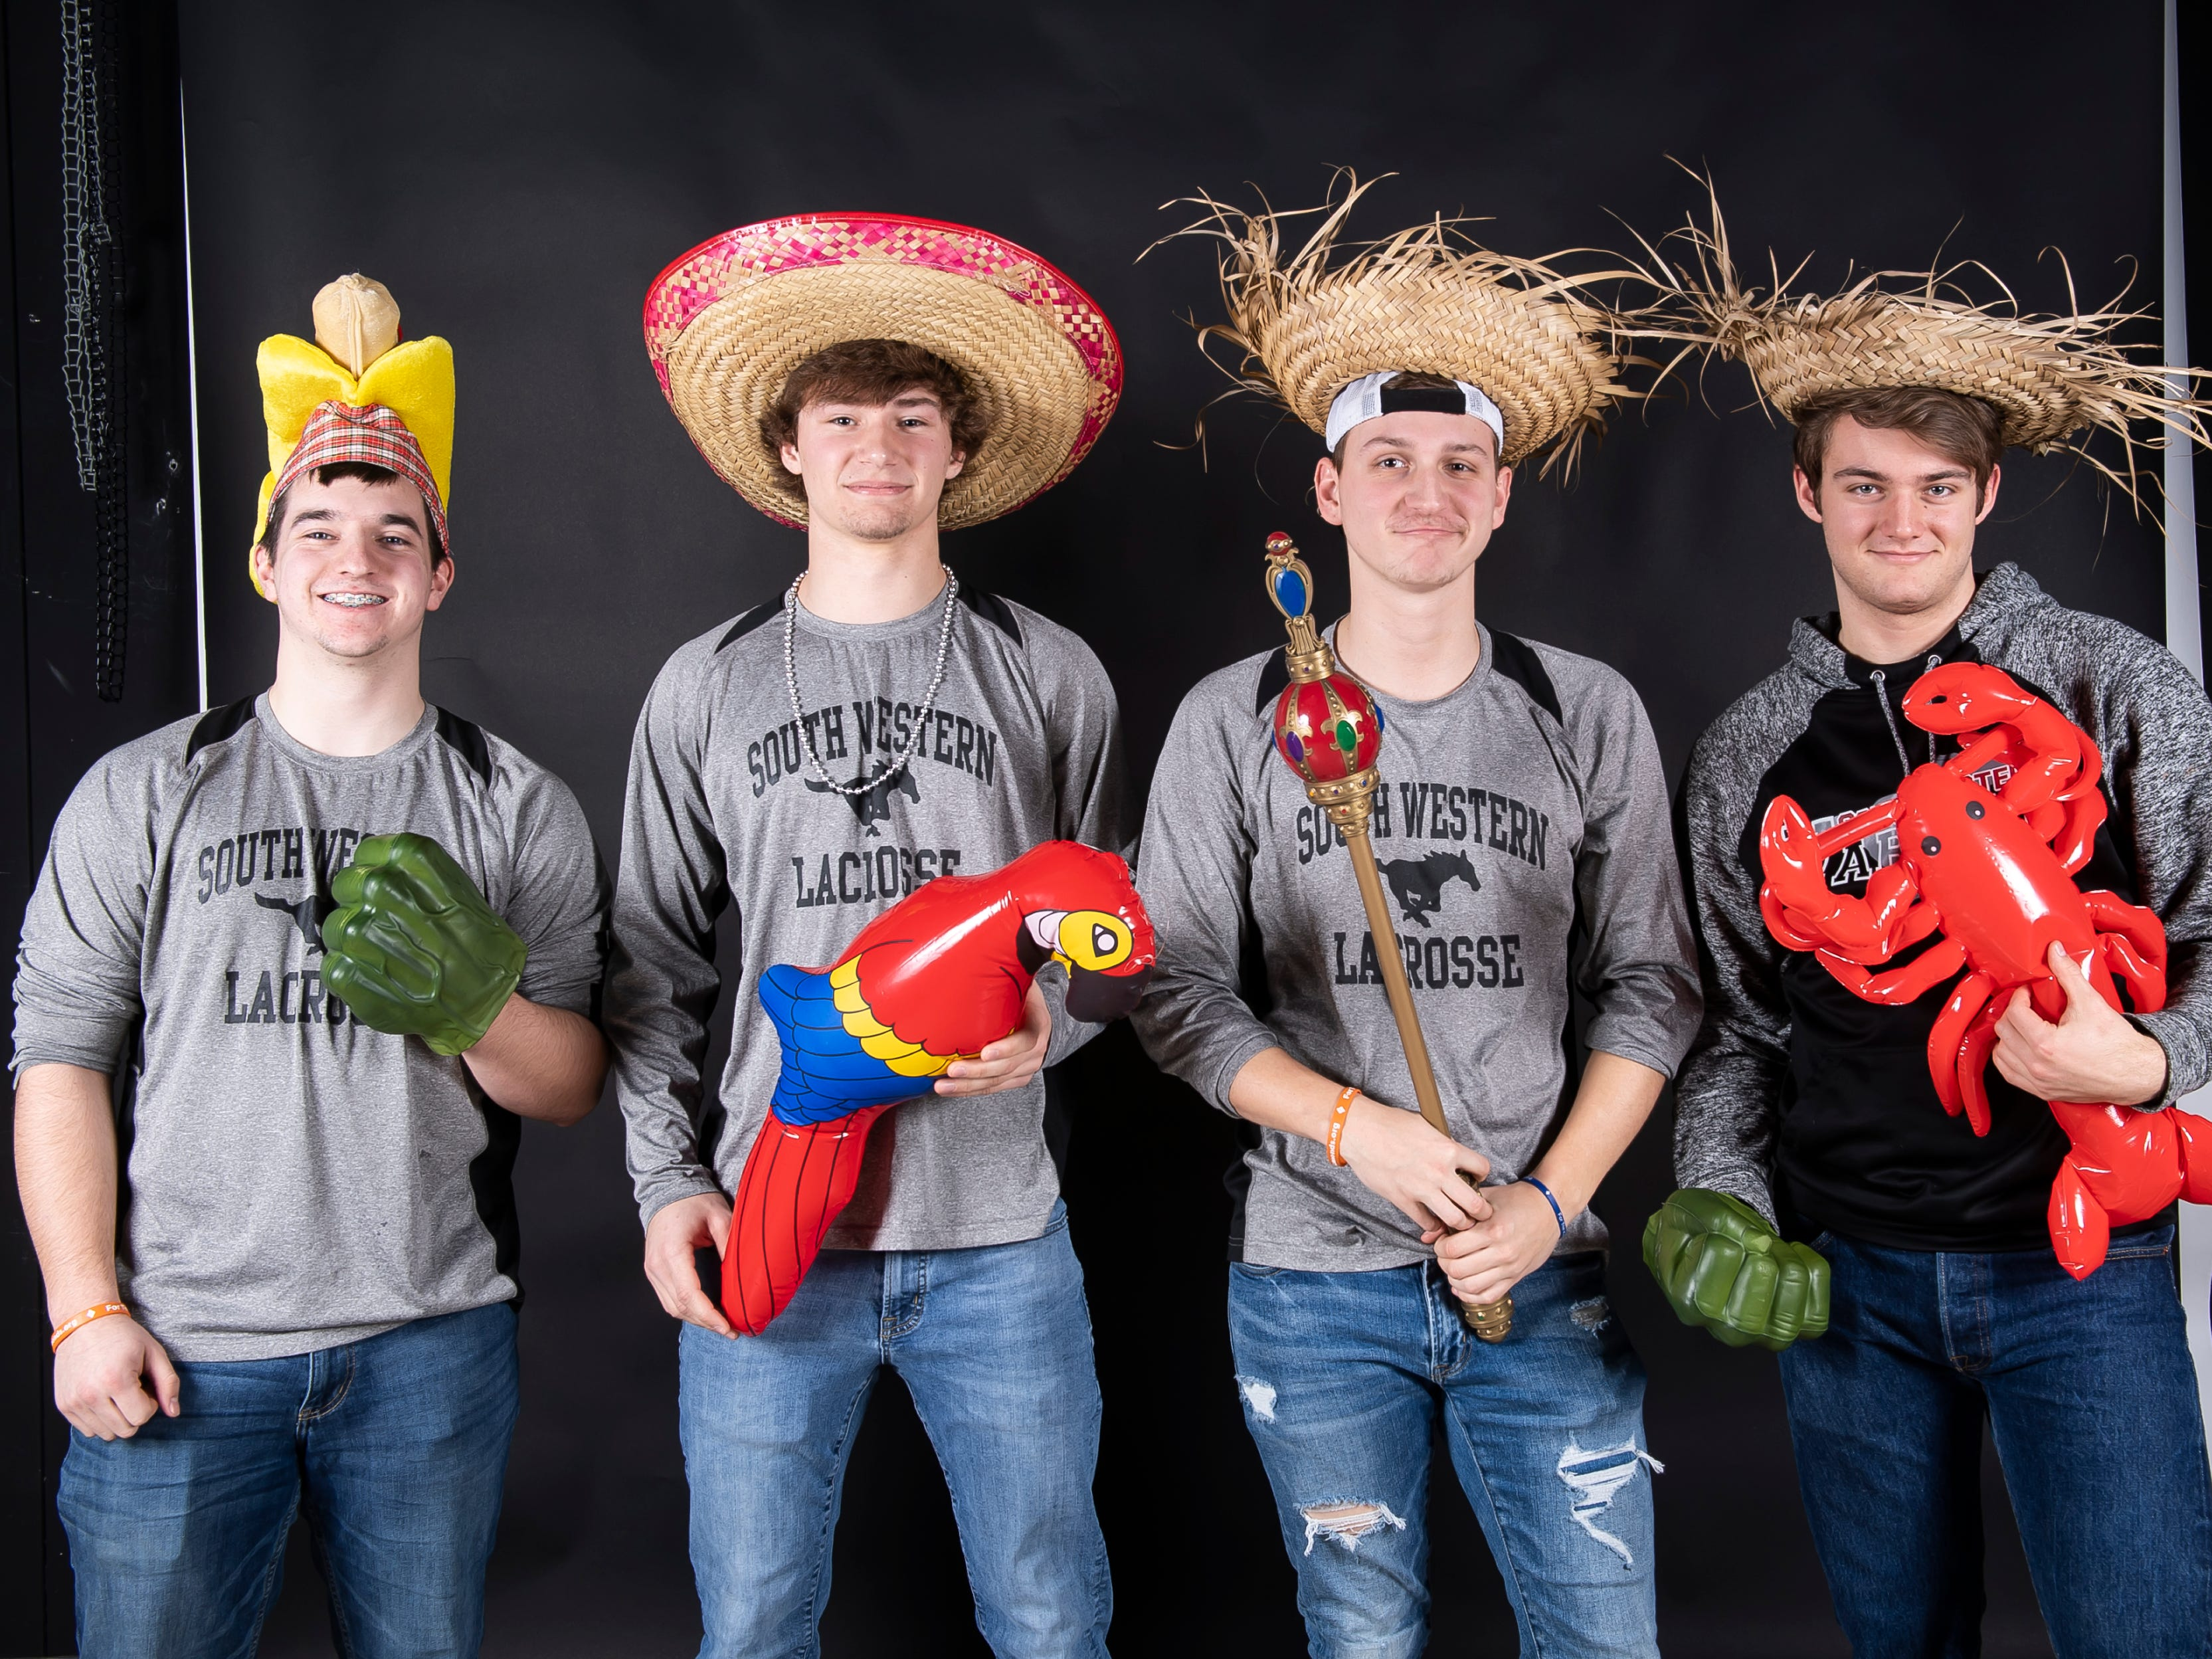 (From left) South Western boys lacrosse players Nick Boone, Ben Smith, James Strausbaugh and Dana McFalls strike a pose in the GameTimePA photo booth during spring sports media day in York Sunday, March 10, 2019.